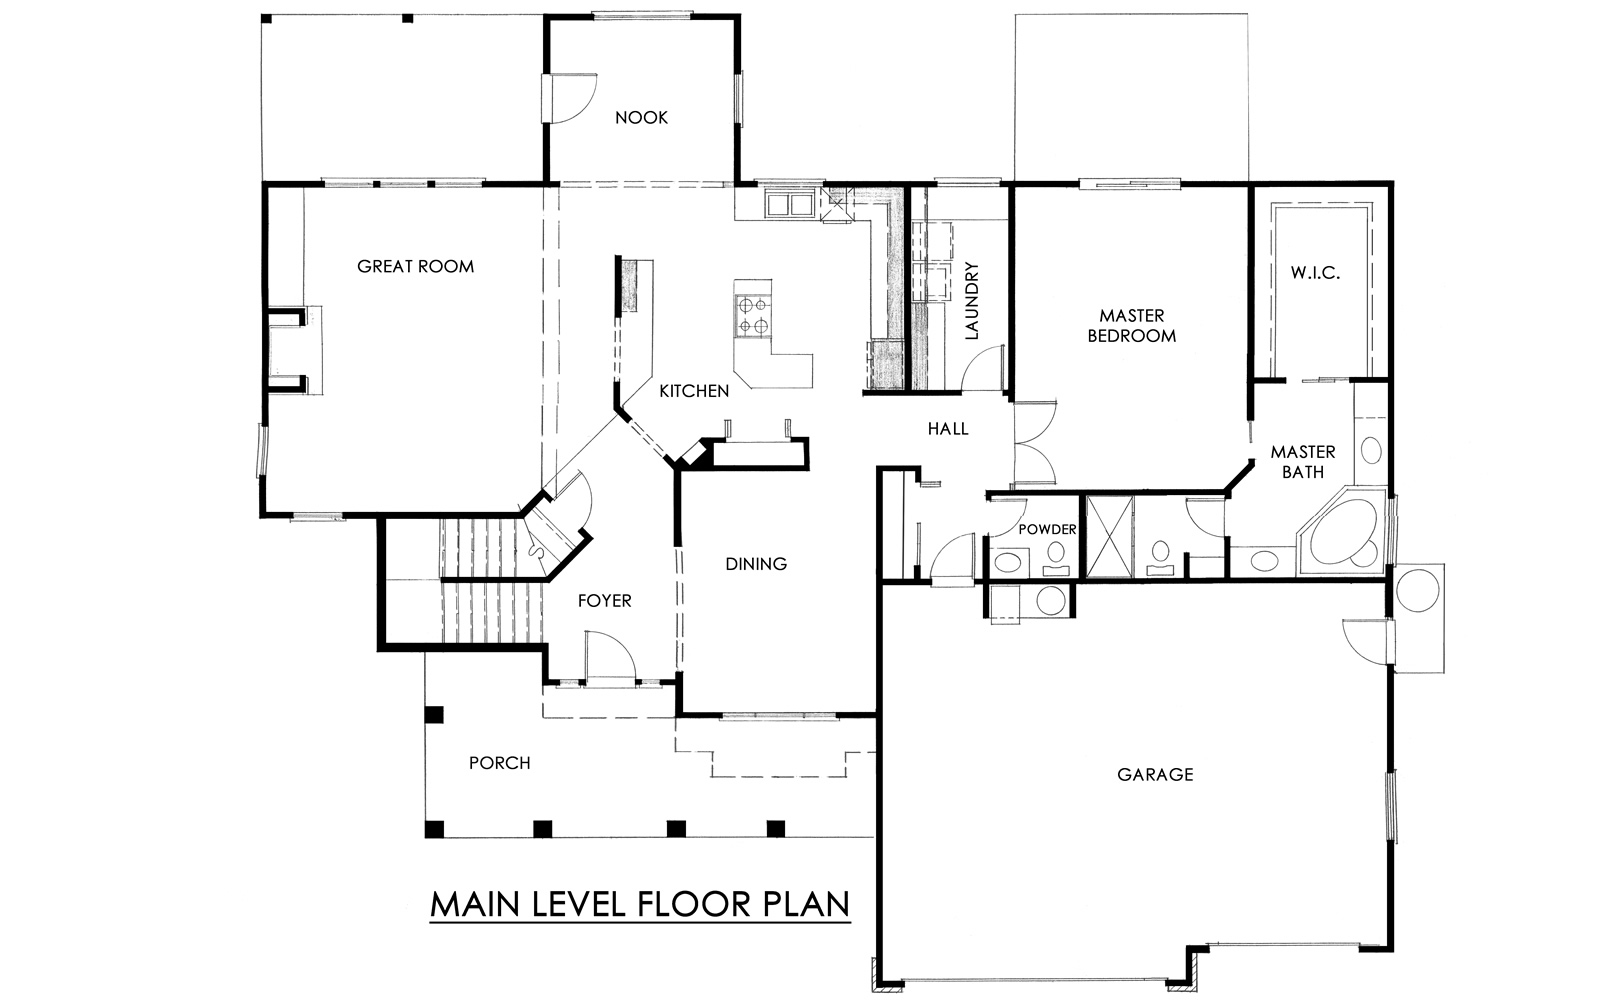 Mcalpine home design moreover Drawing furthermore Moreinfo in addition 197595502372598460 also Tamarack. on bobby alpine